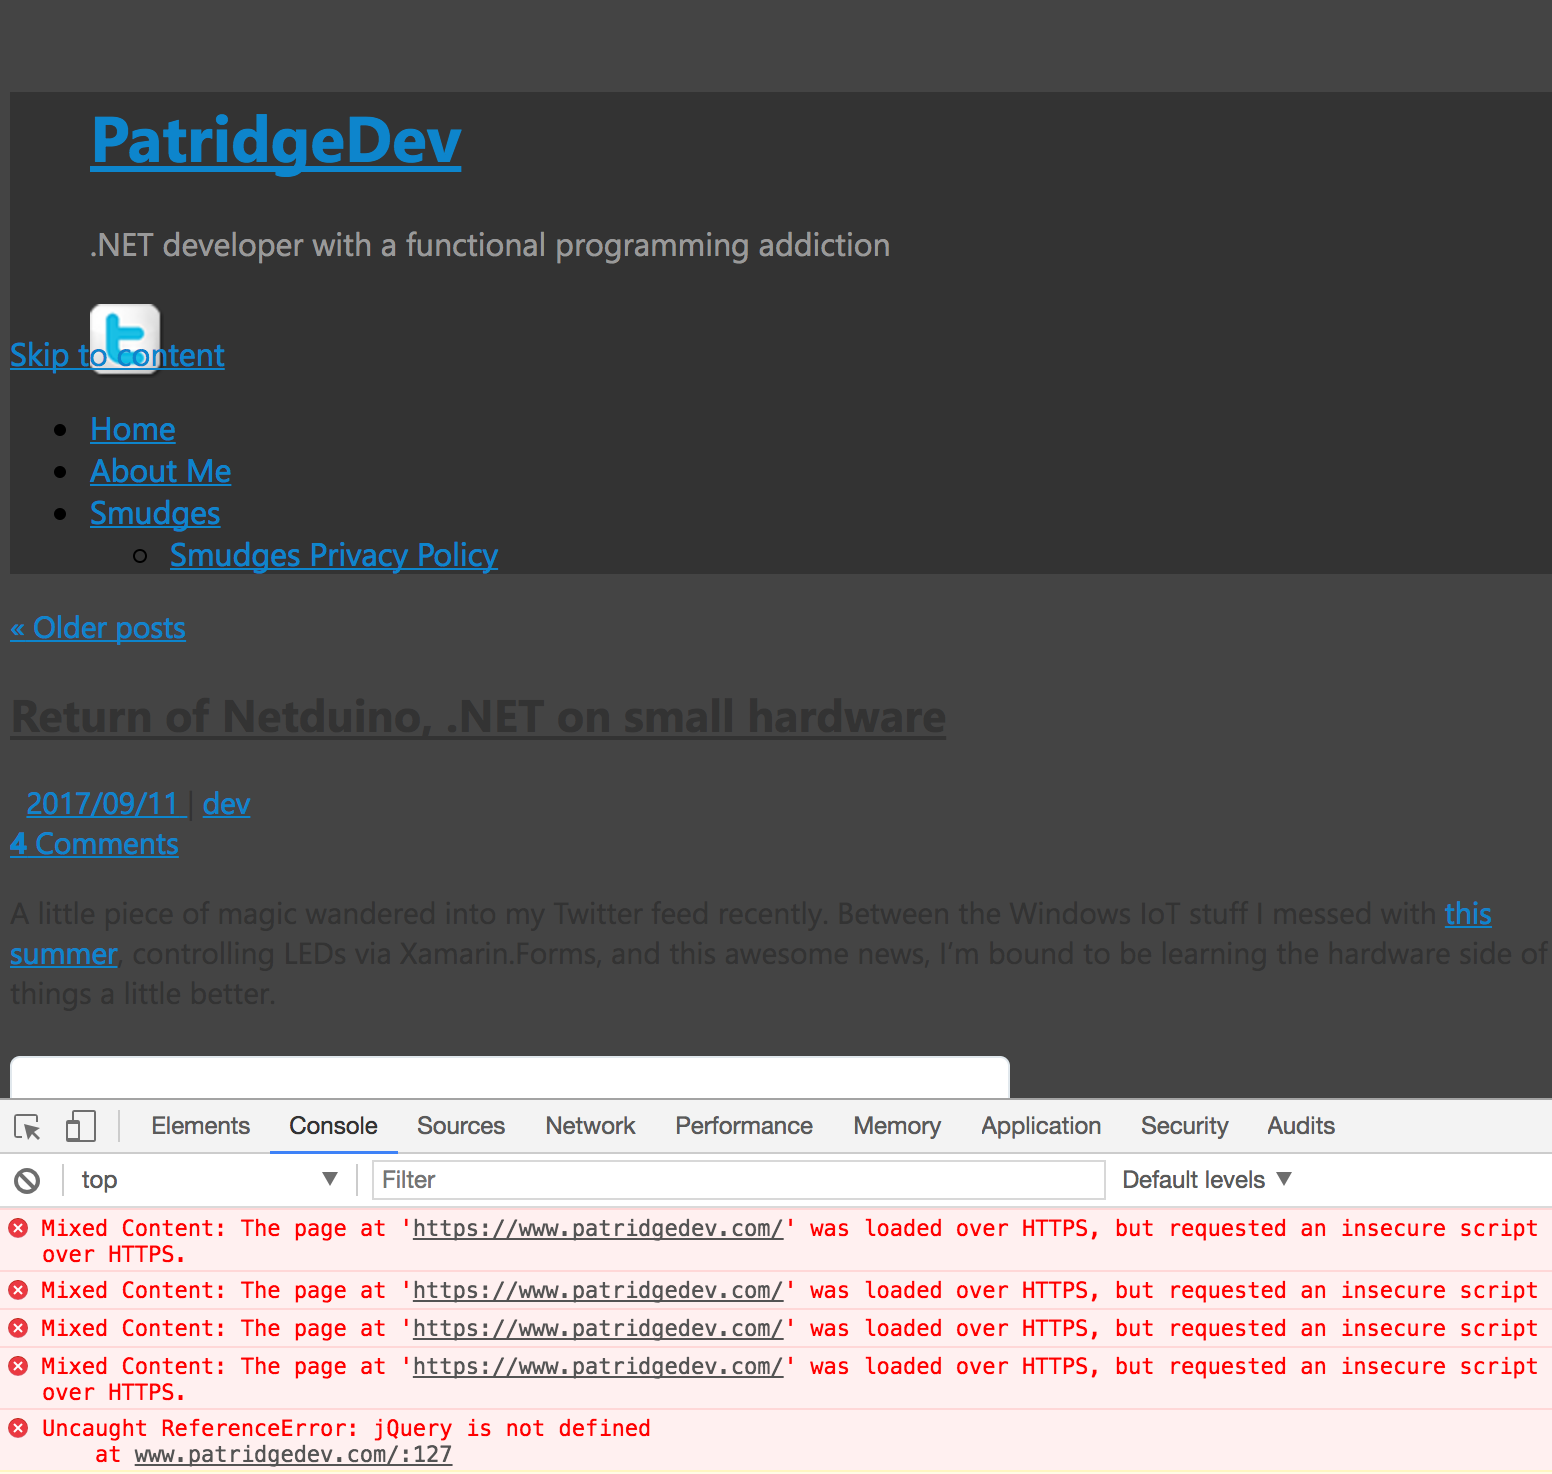 patridgedev.com with several mixed-security broken things making it render horribly in most browsers